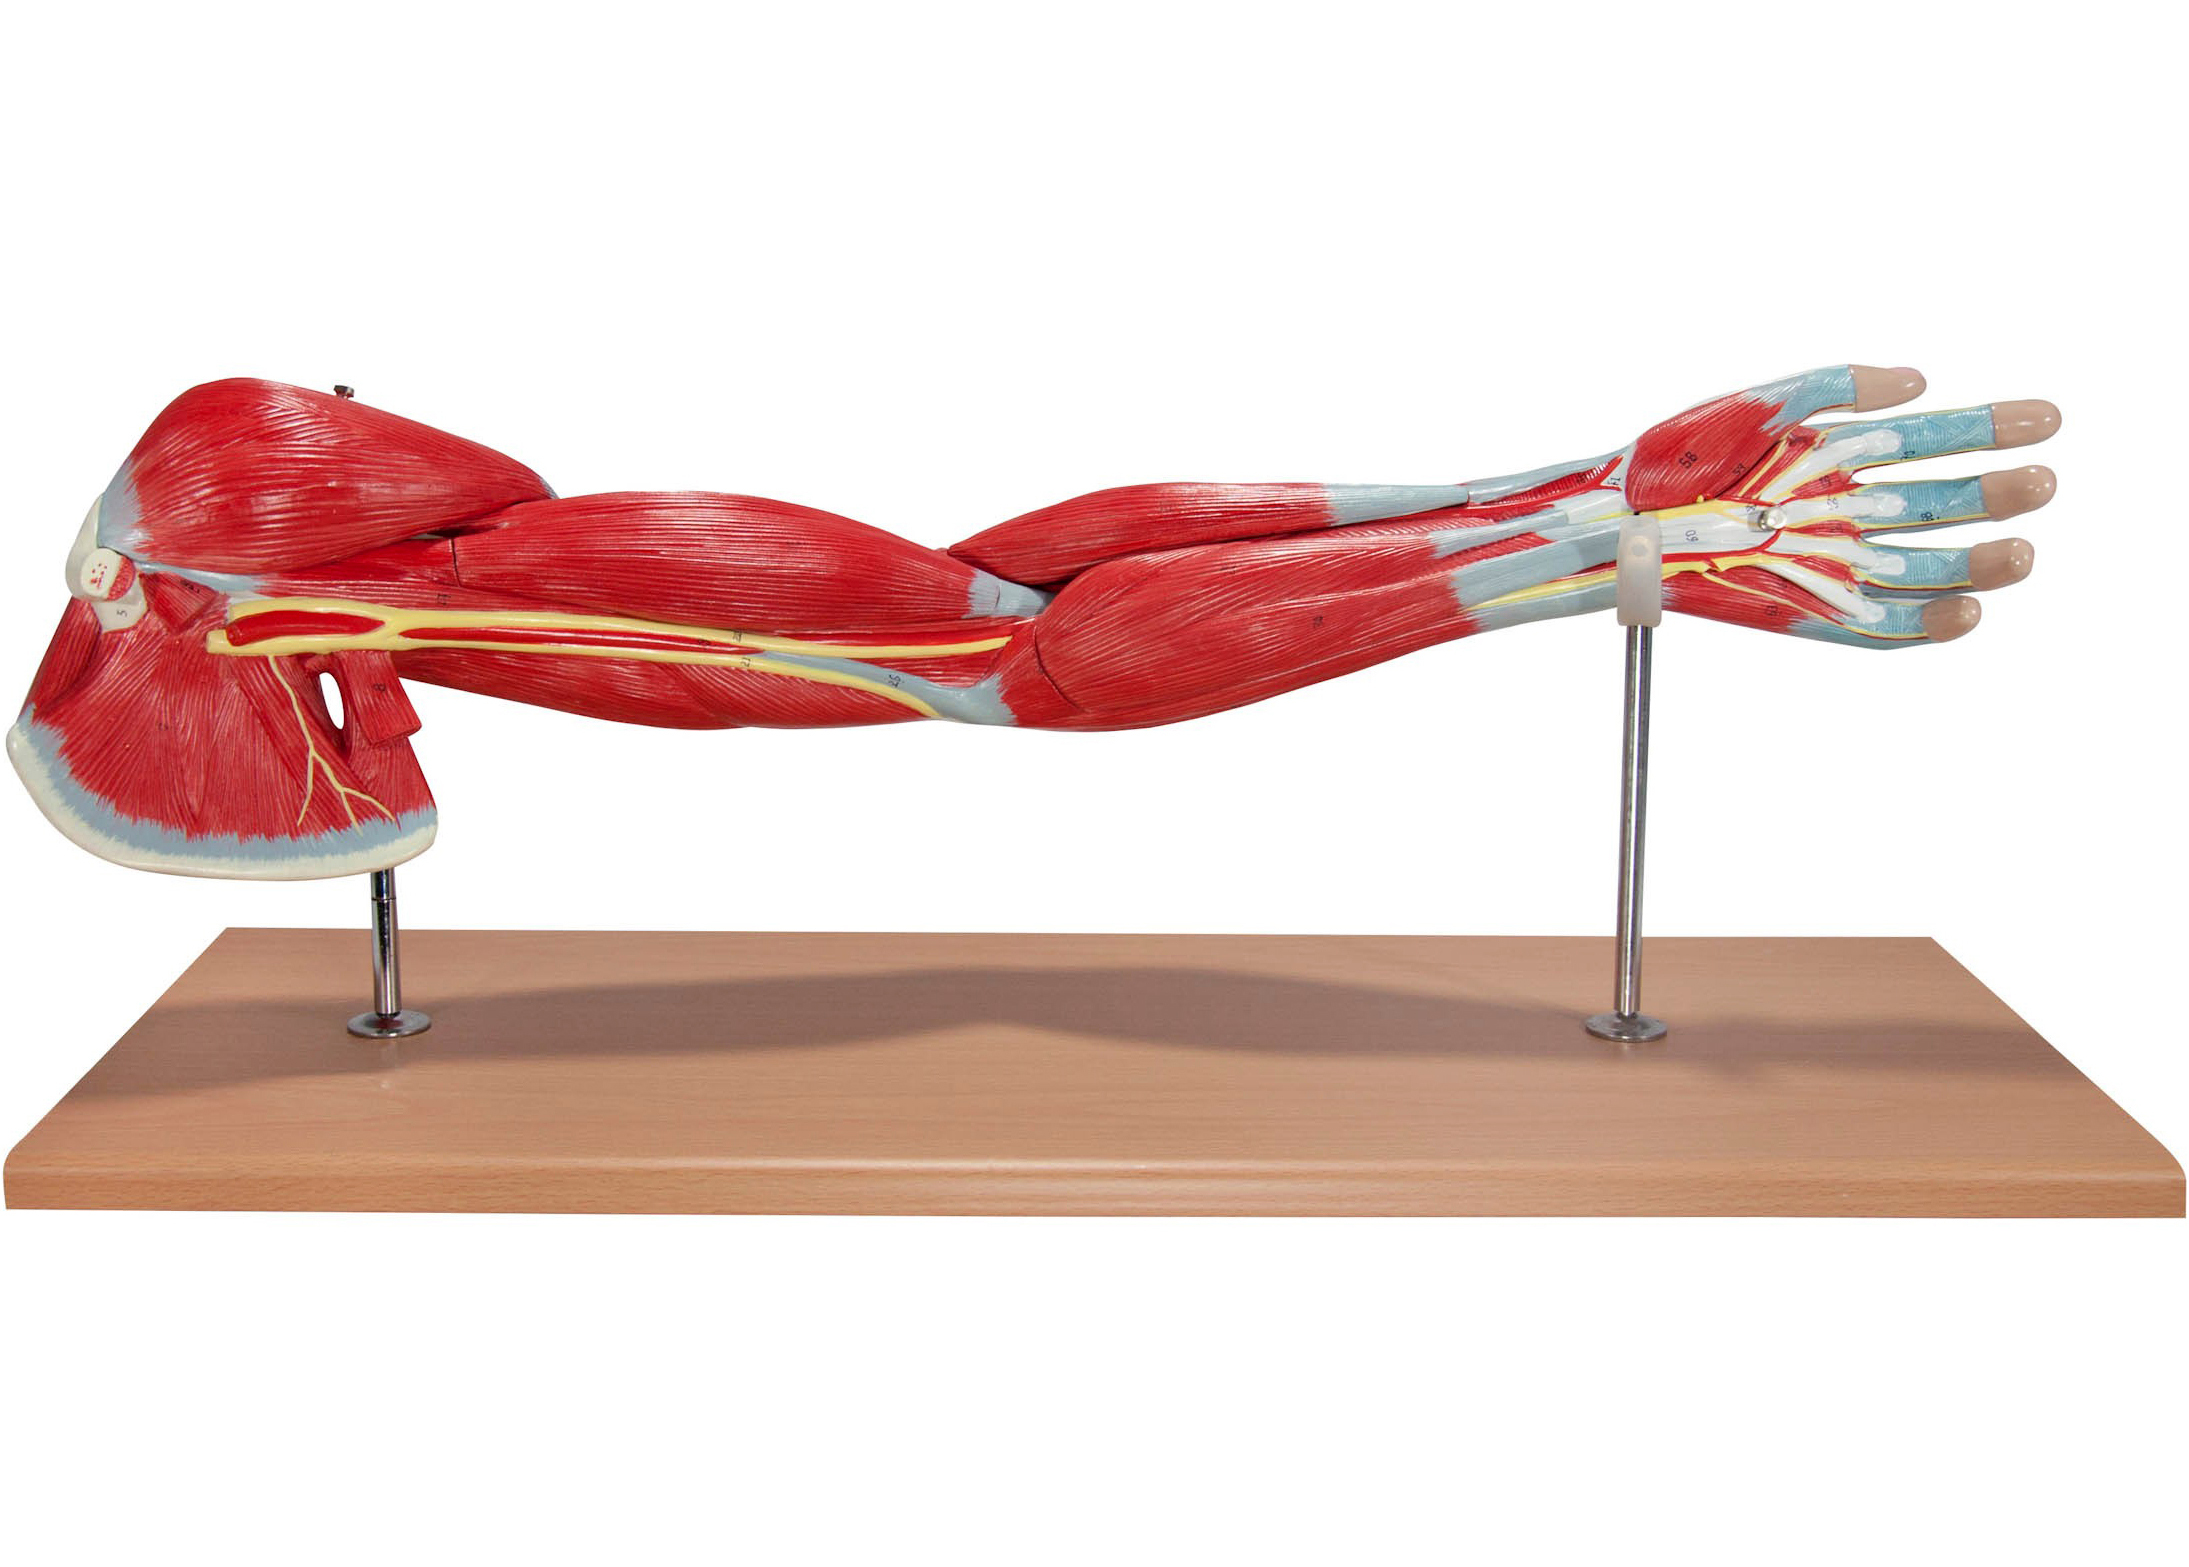 Life-Size Anatomical Human Arm Muscle Model | Muscle Models – Store ...